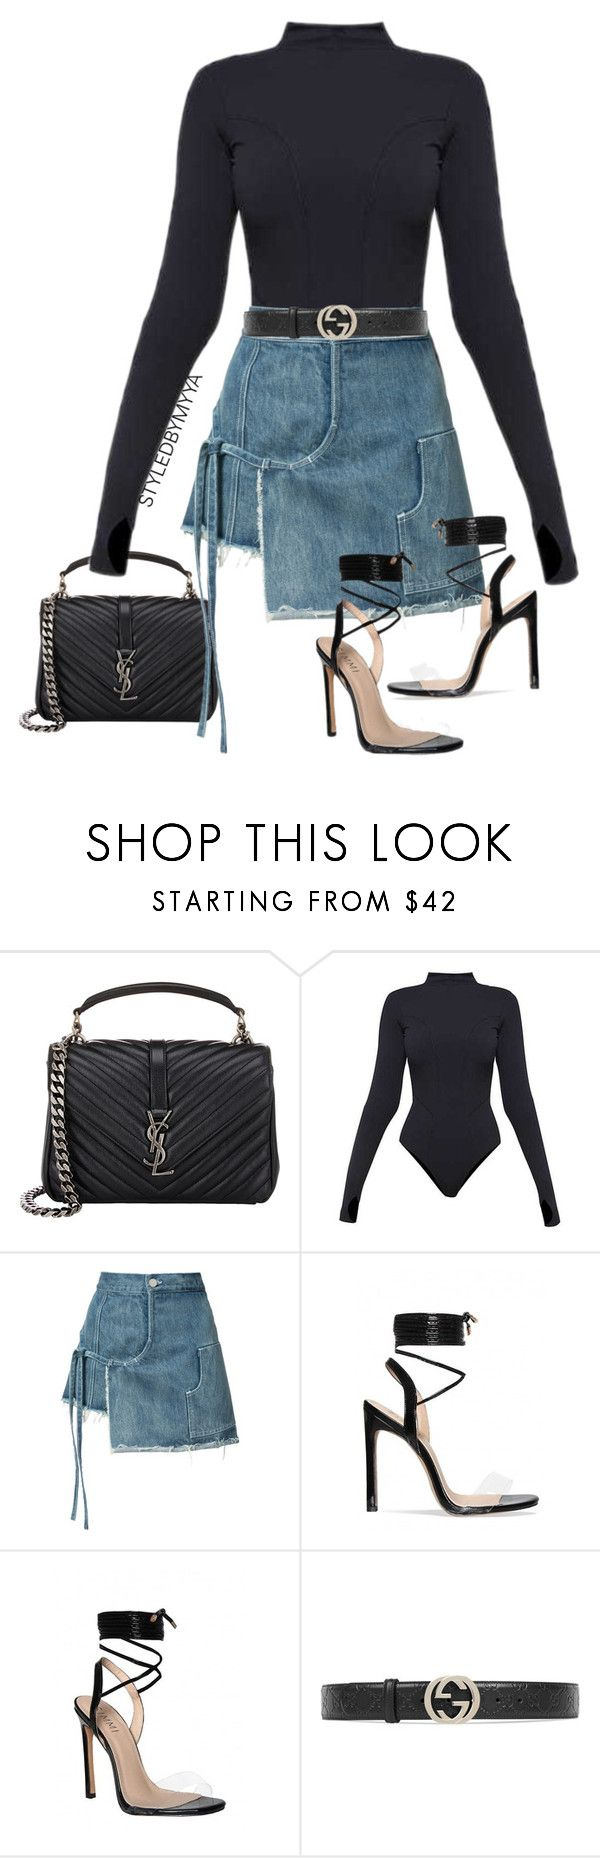 """""""NOBU"""" by my-ya ❤ liked on Polyvore featuring Yves Saint Laurent, Ivy Park, Sandy Liang and Gucci"""